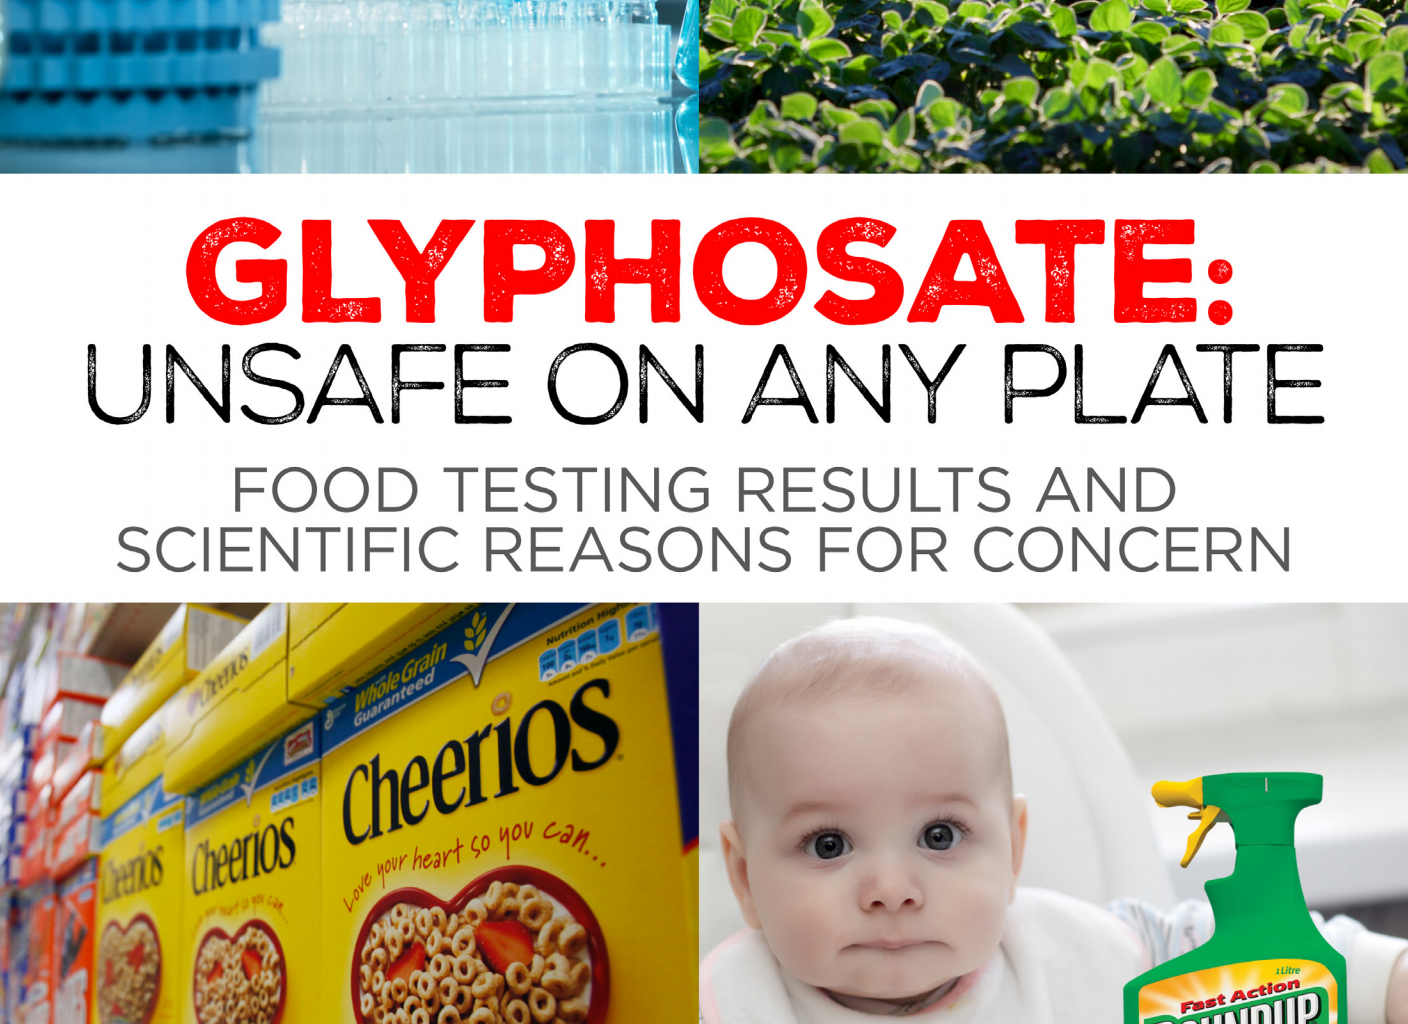 GMO's Unsafe on Any Plate